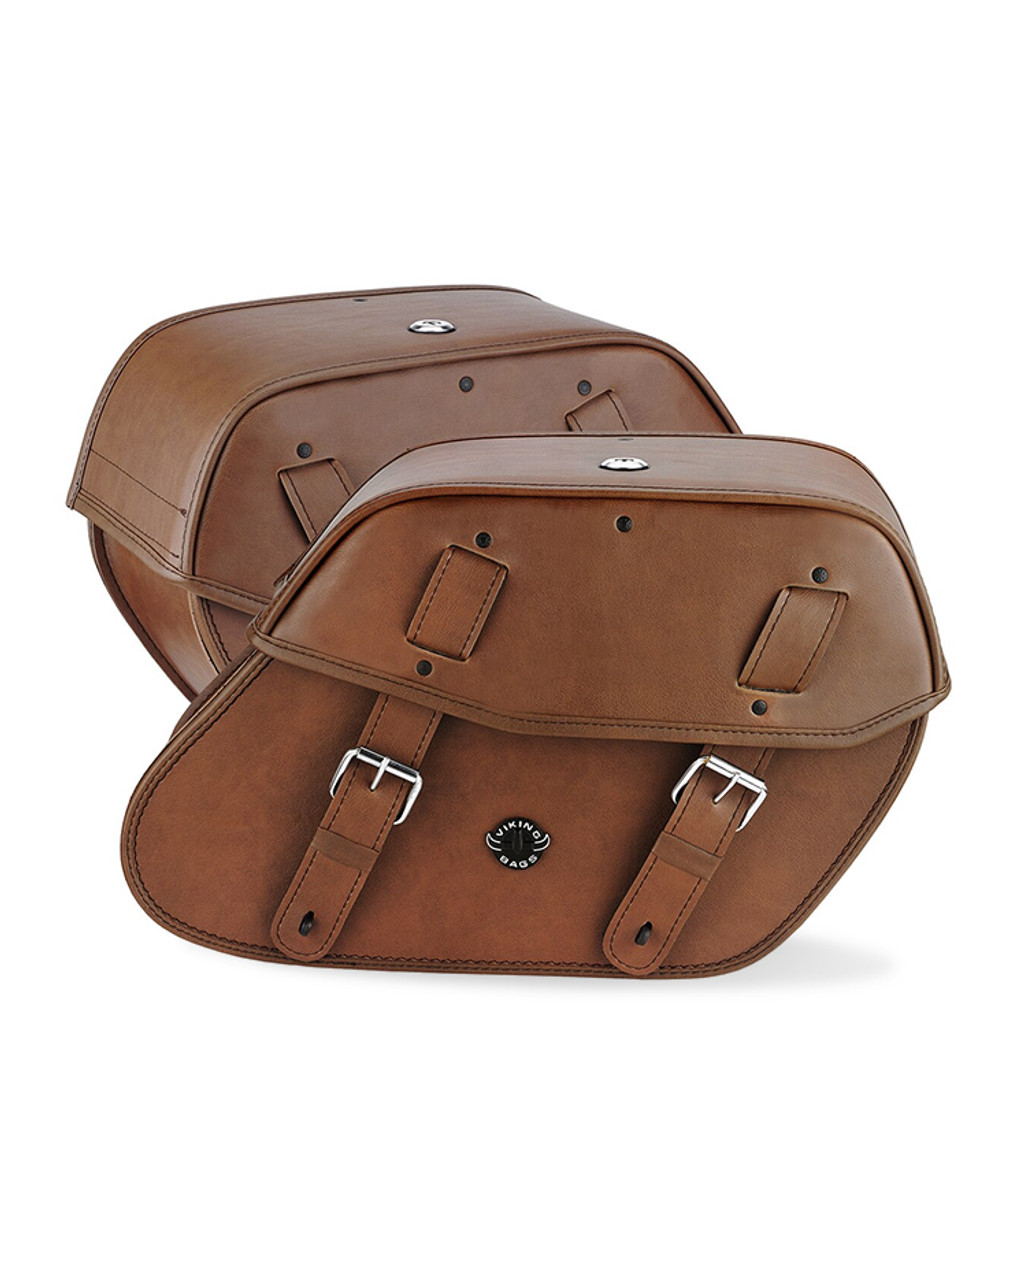 Indian Chief Standard Viking Odin Brown Large Motorcycle Saddlebags Both Bags View